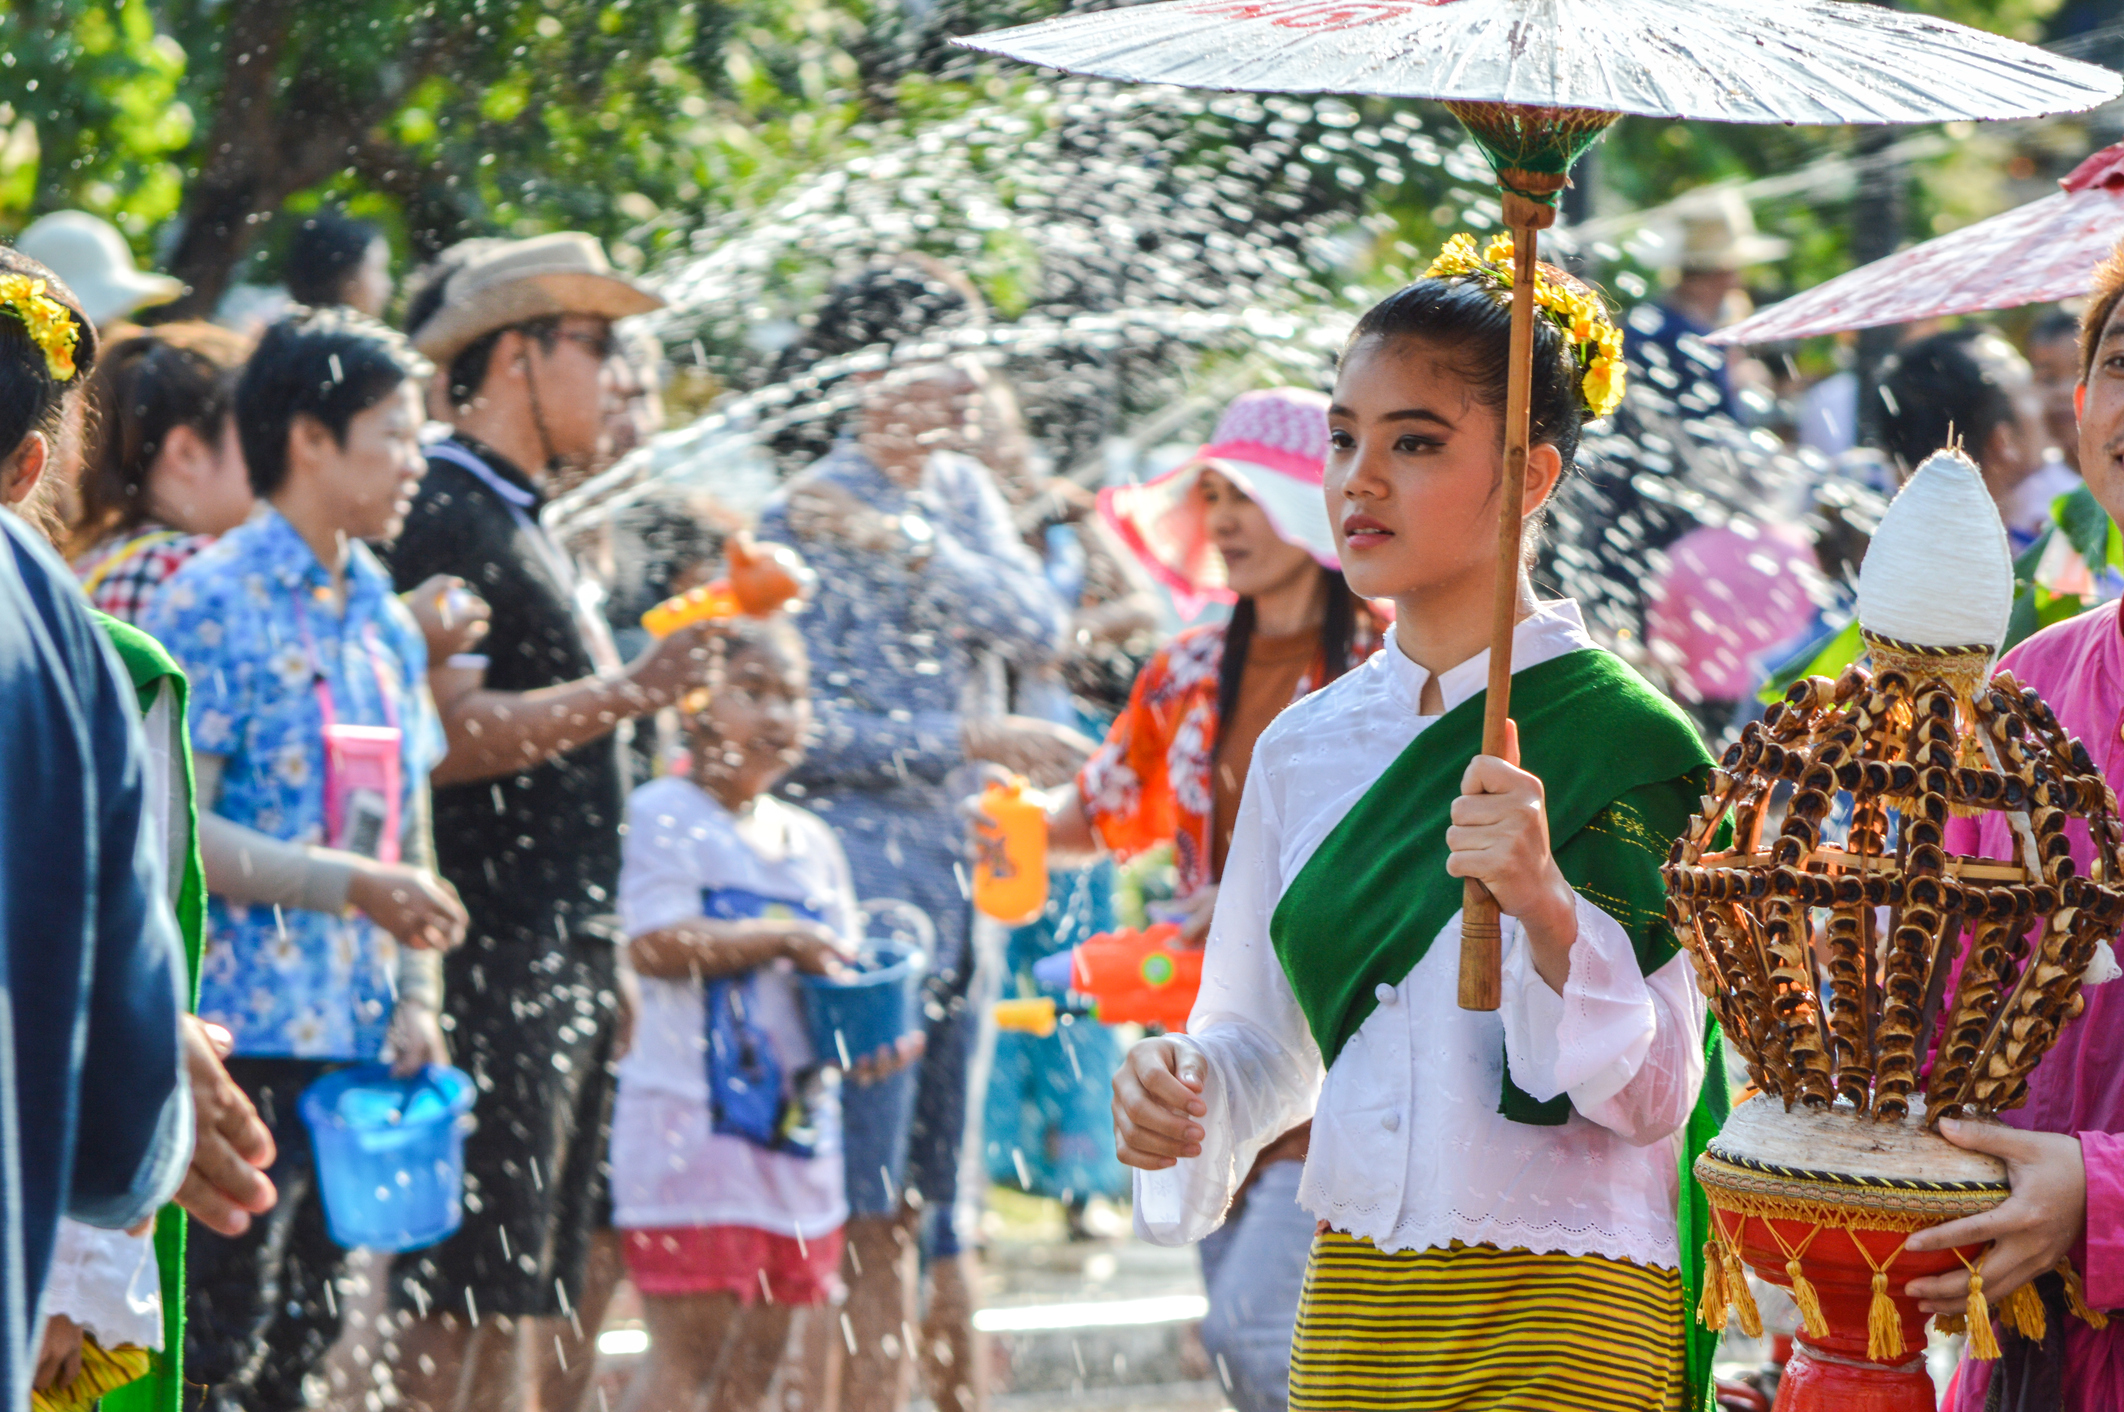 The Songkran festival parade. Songkran is the holiday known for its water festival.